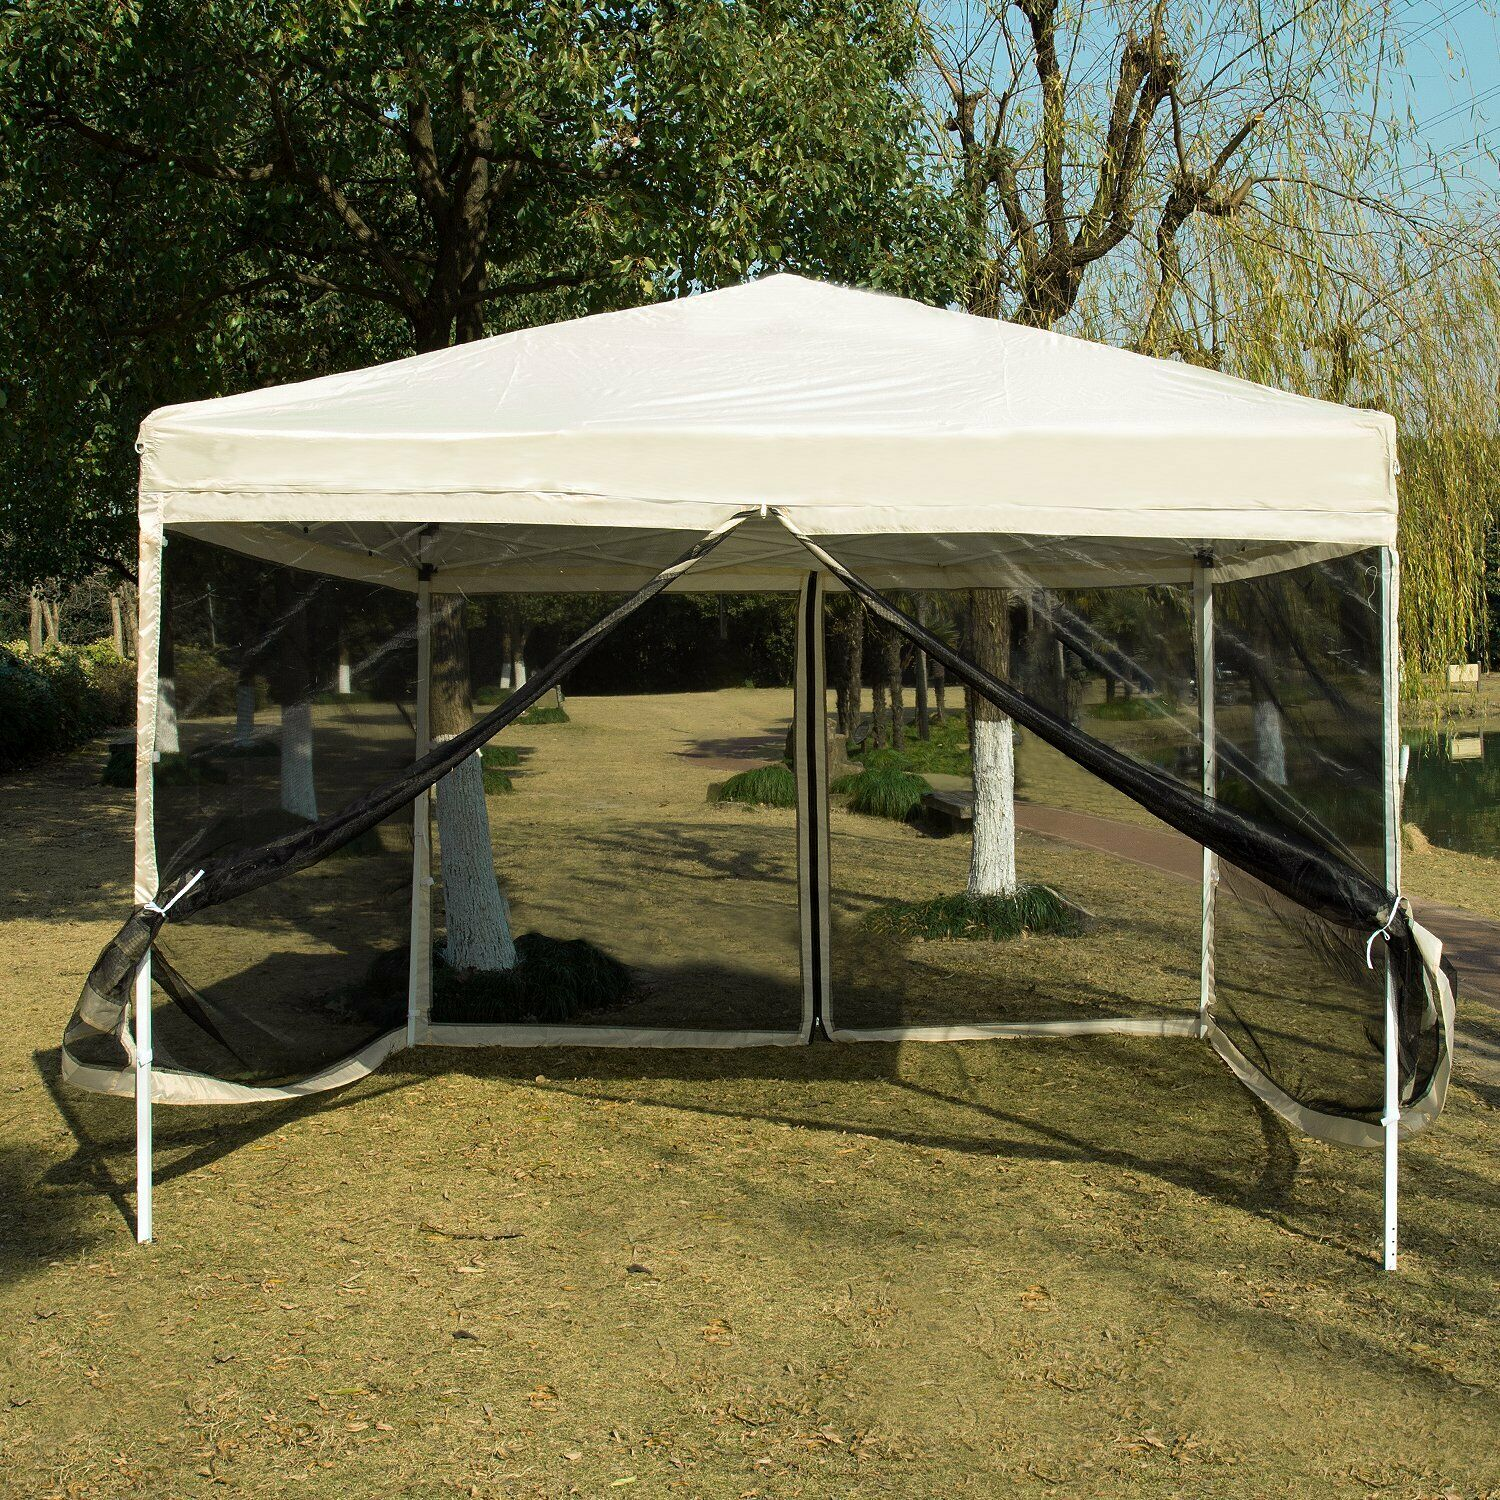 VIVOHOME  10'x10' Instant Pop up Canopy Folding Party Tent Outdoor Mesh Sidewalls  promotional items